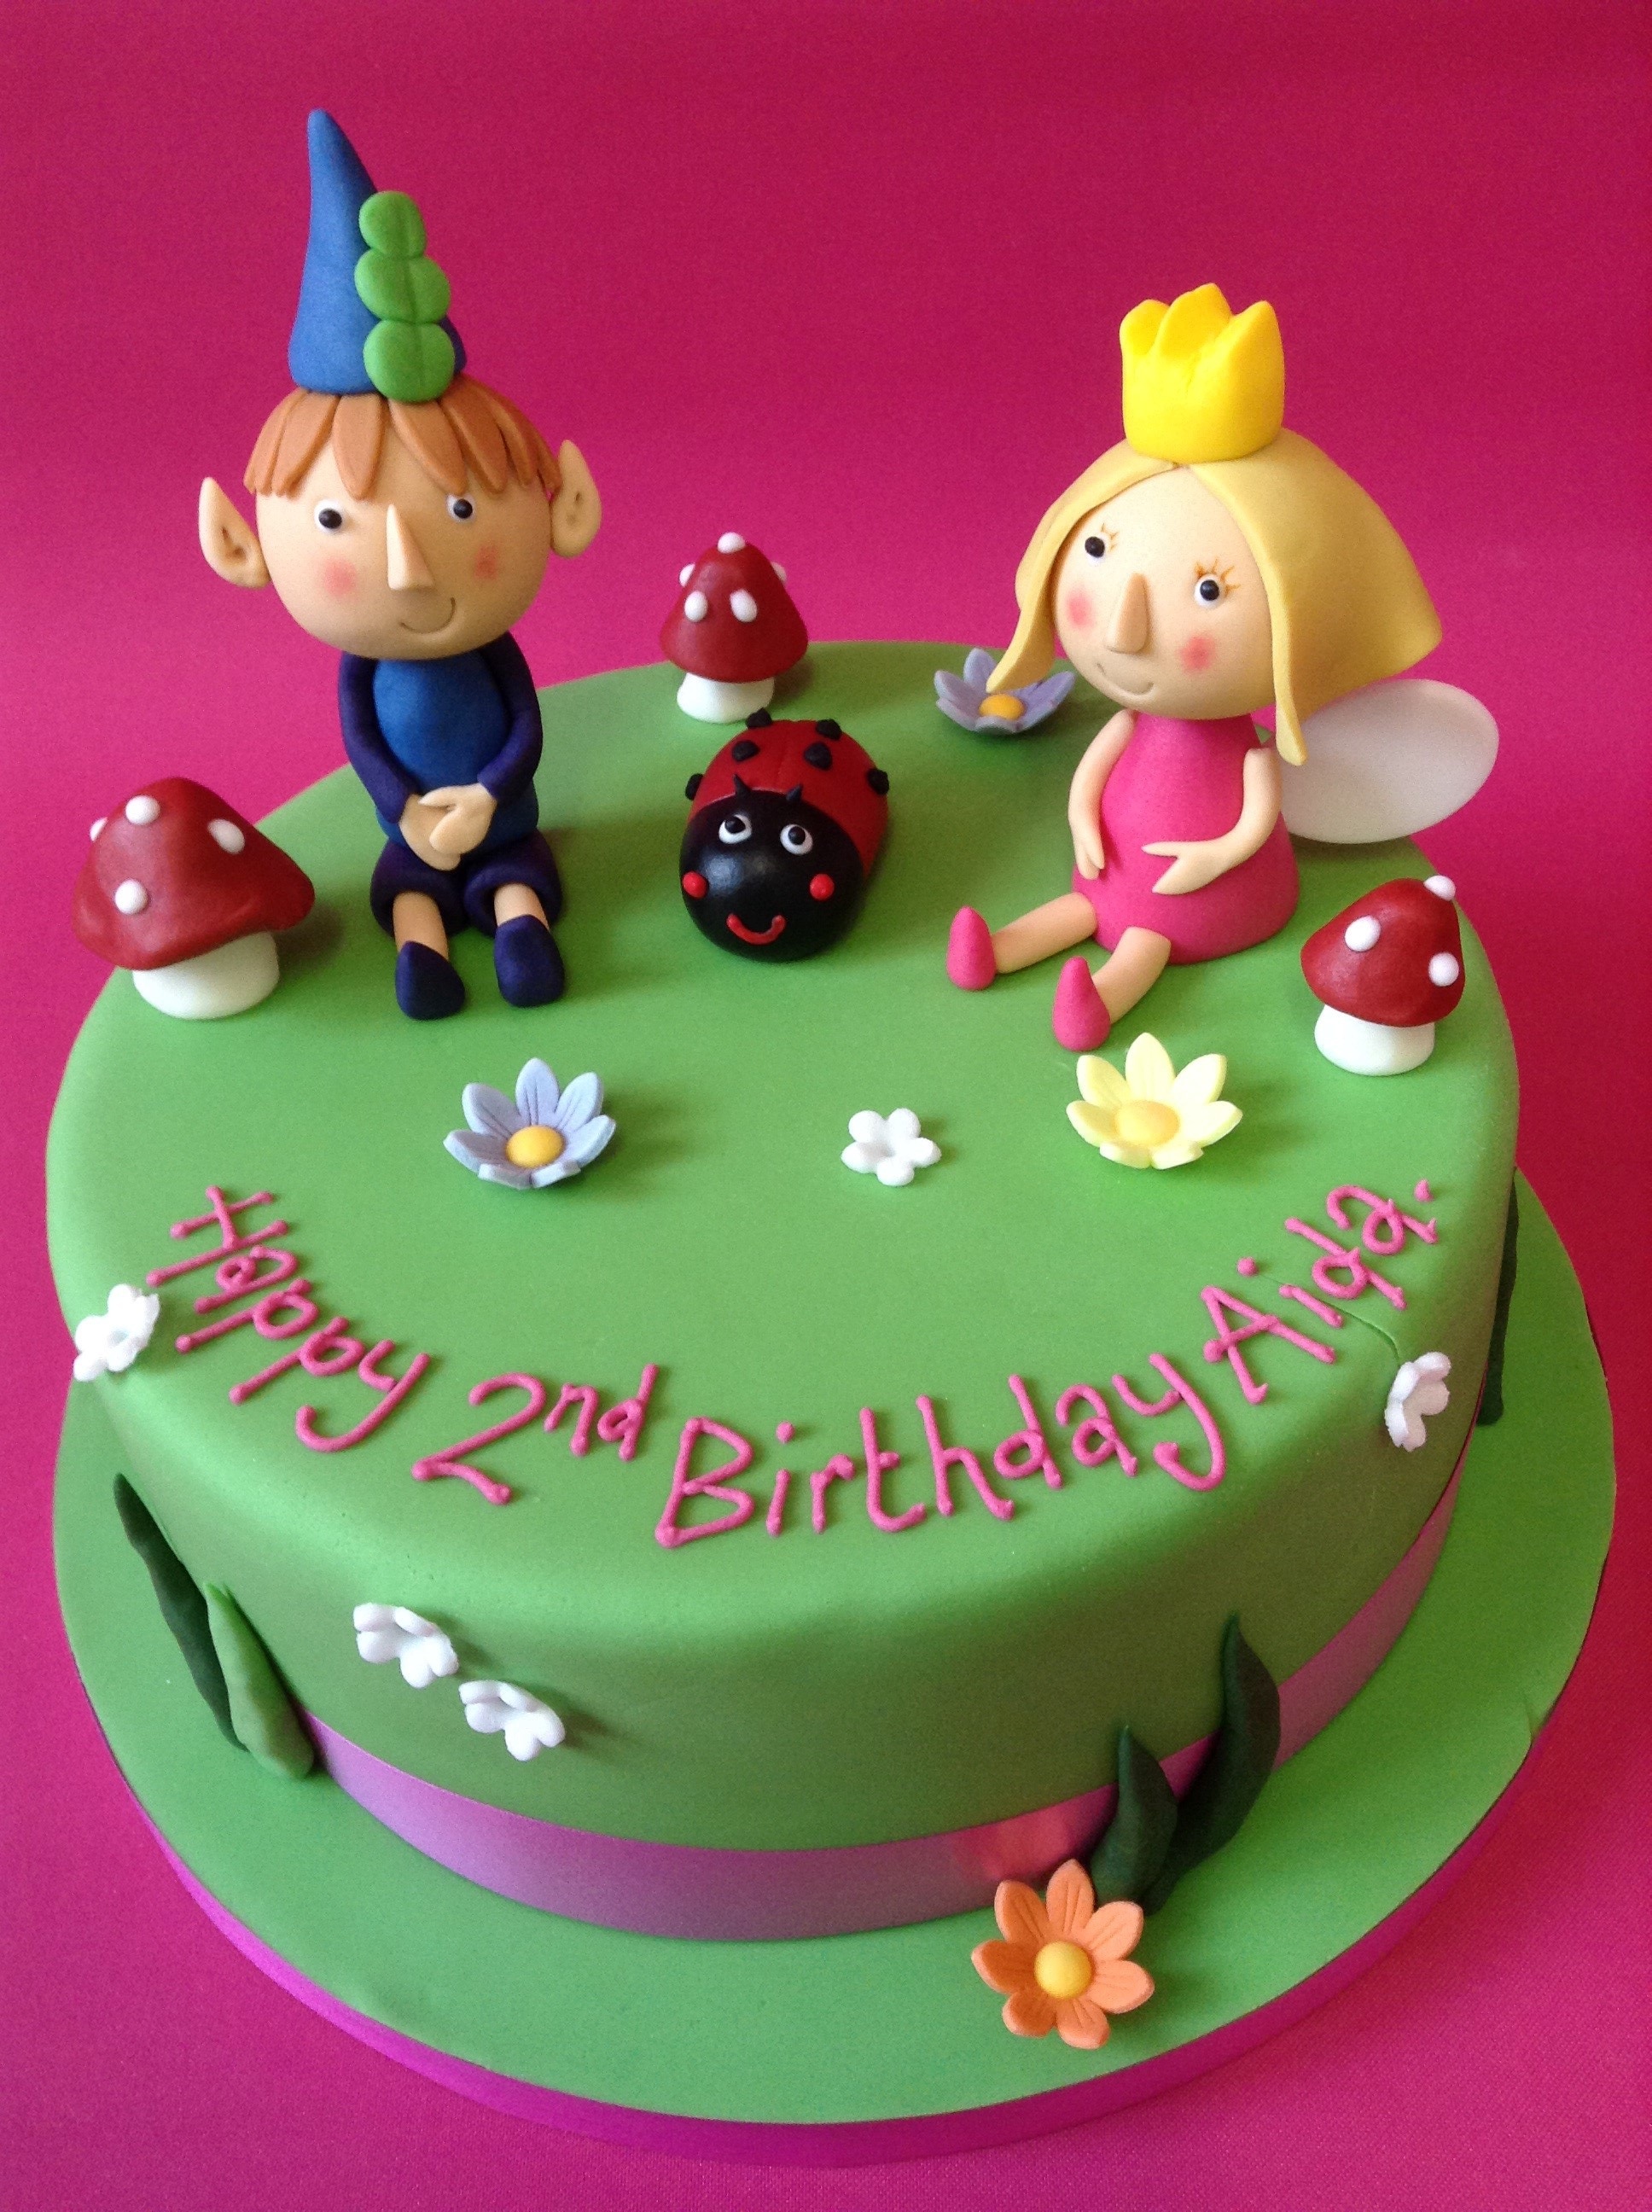 Children s Birthday Cakes in Leeds - The Little Cake Cottage